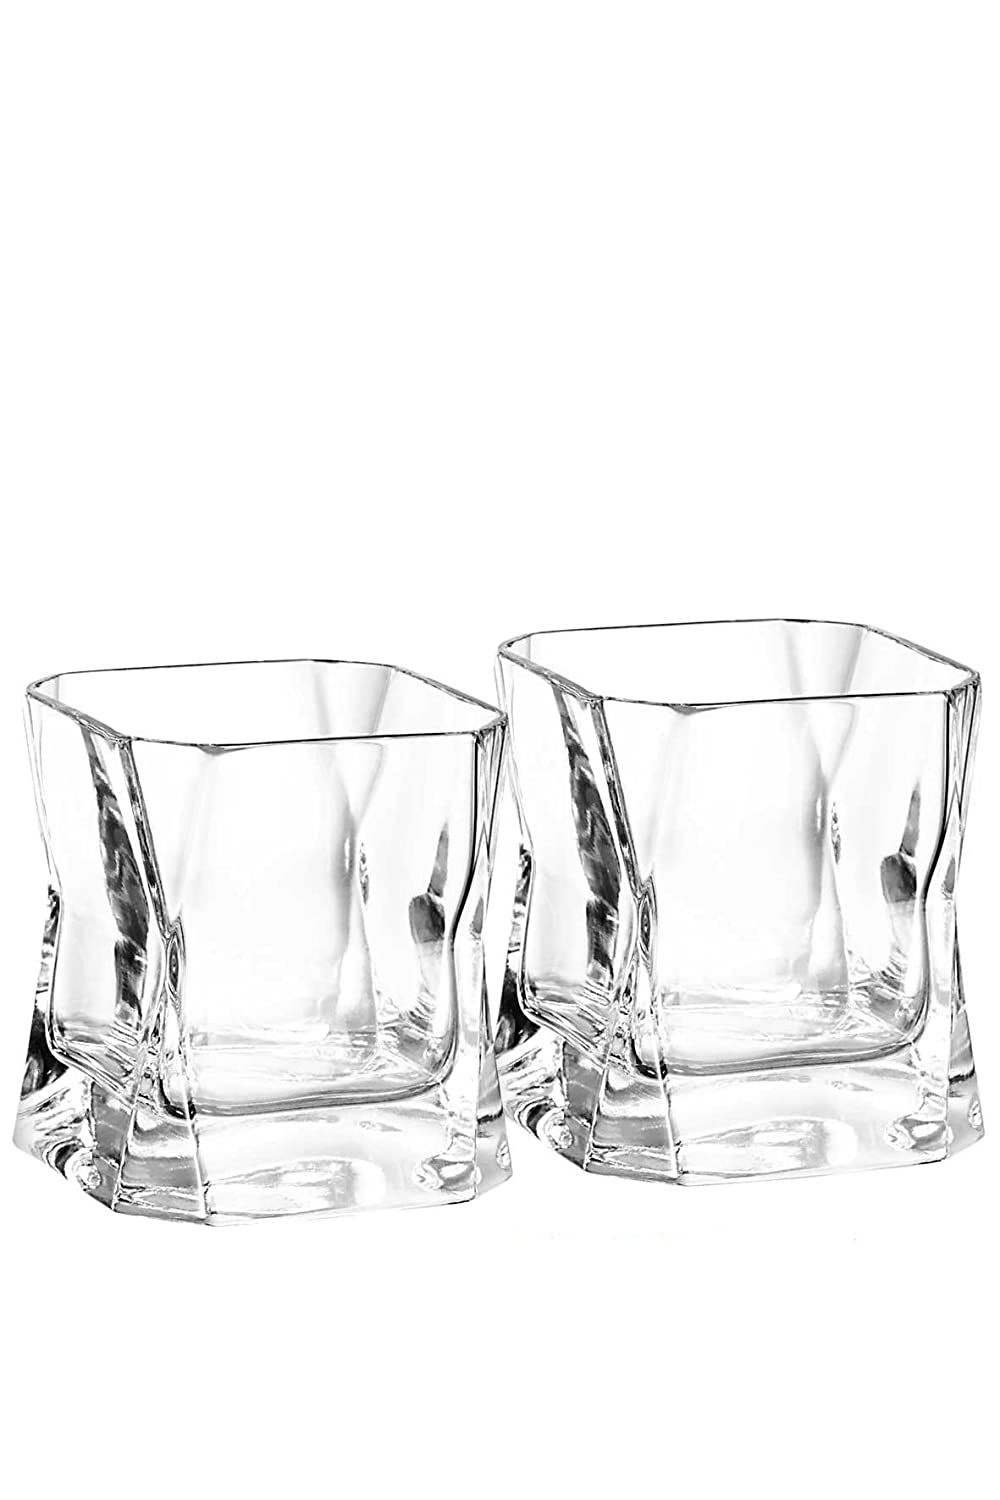 Cibi Double Blade Runner Whisky Glass (Twin Pack) 37cl 030101